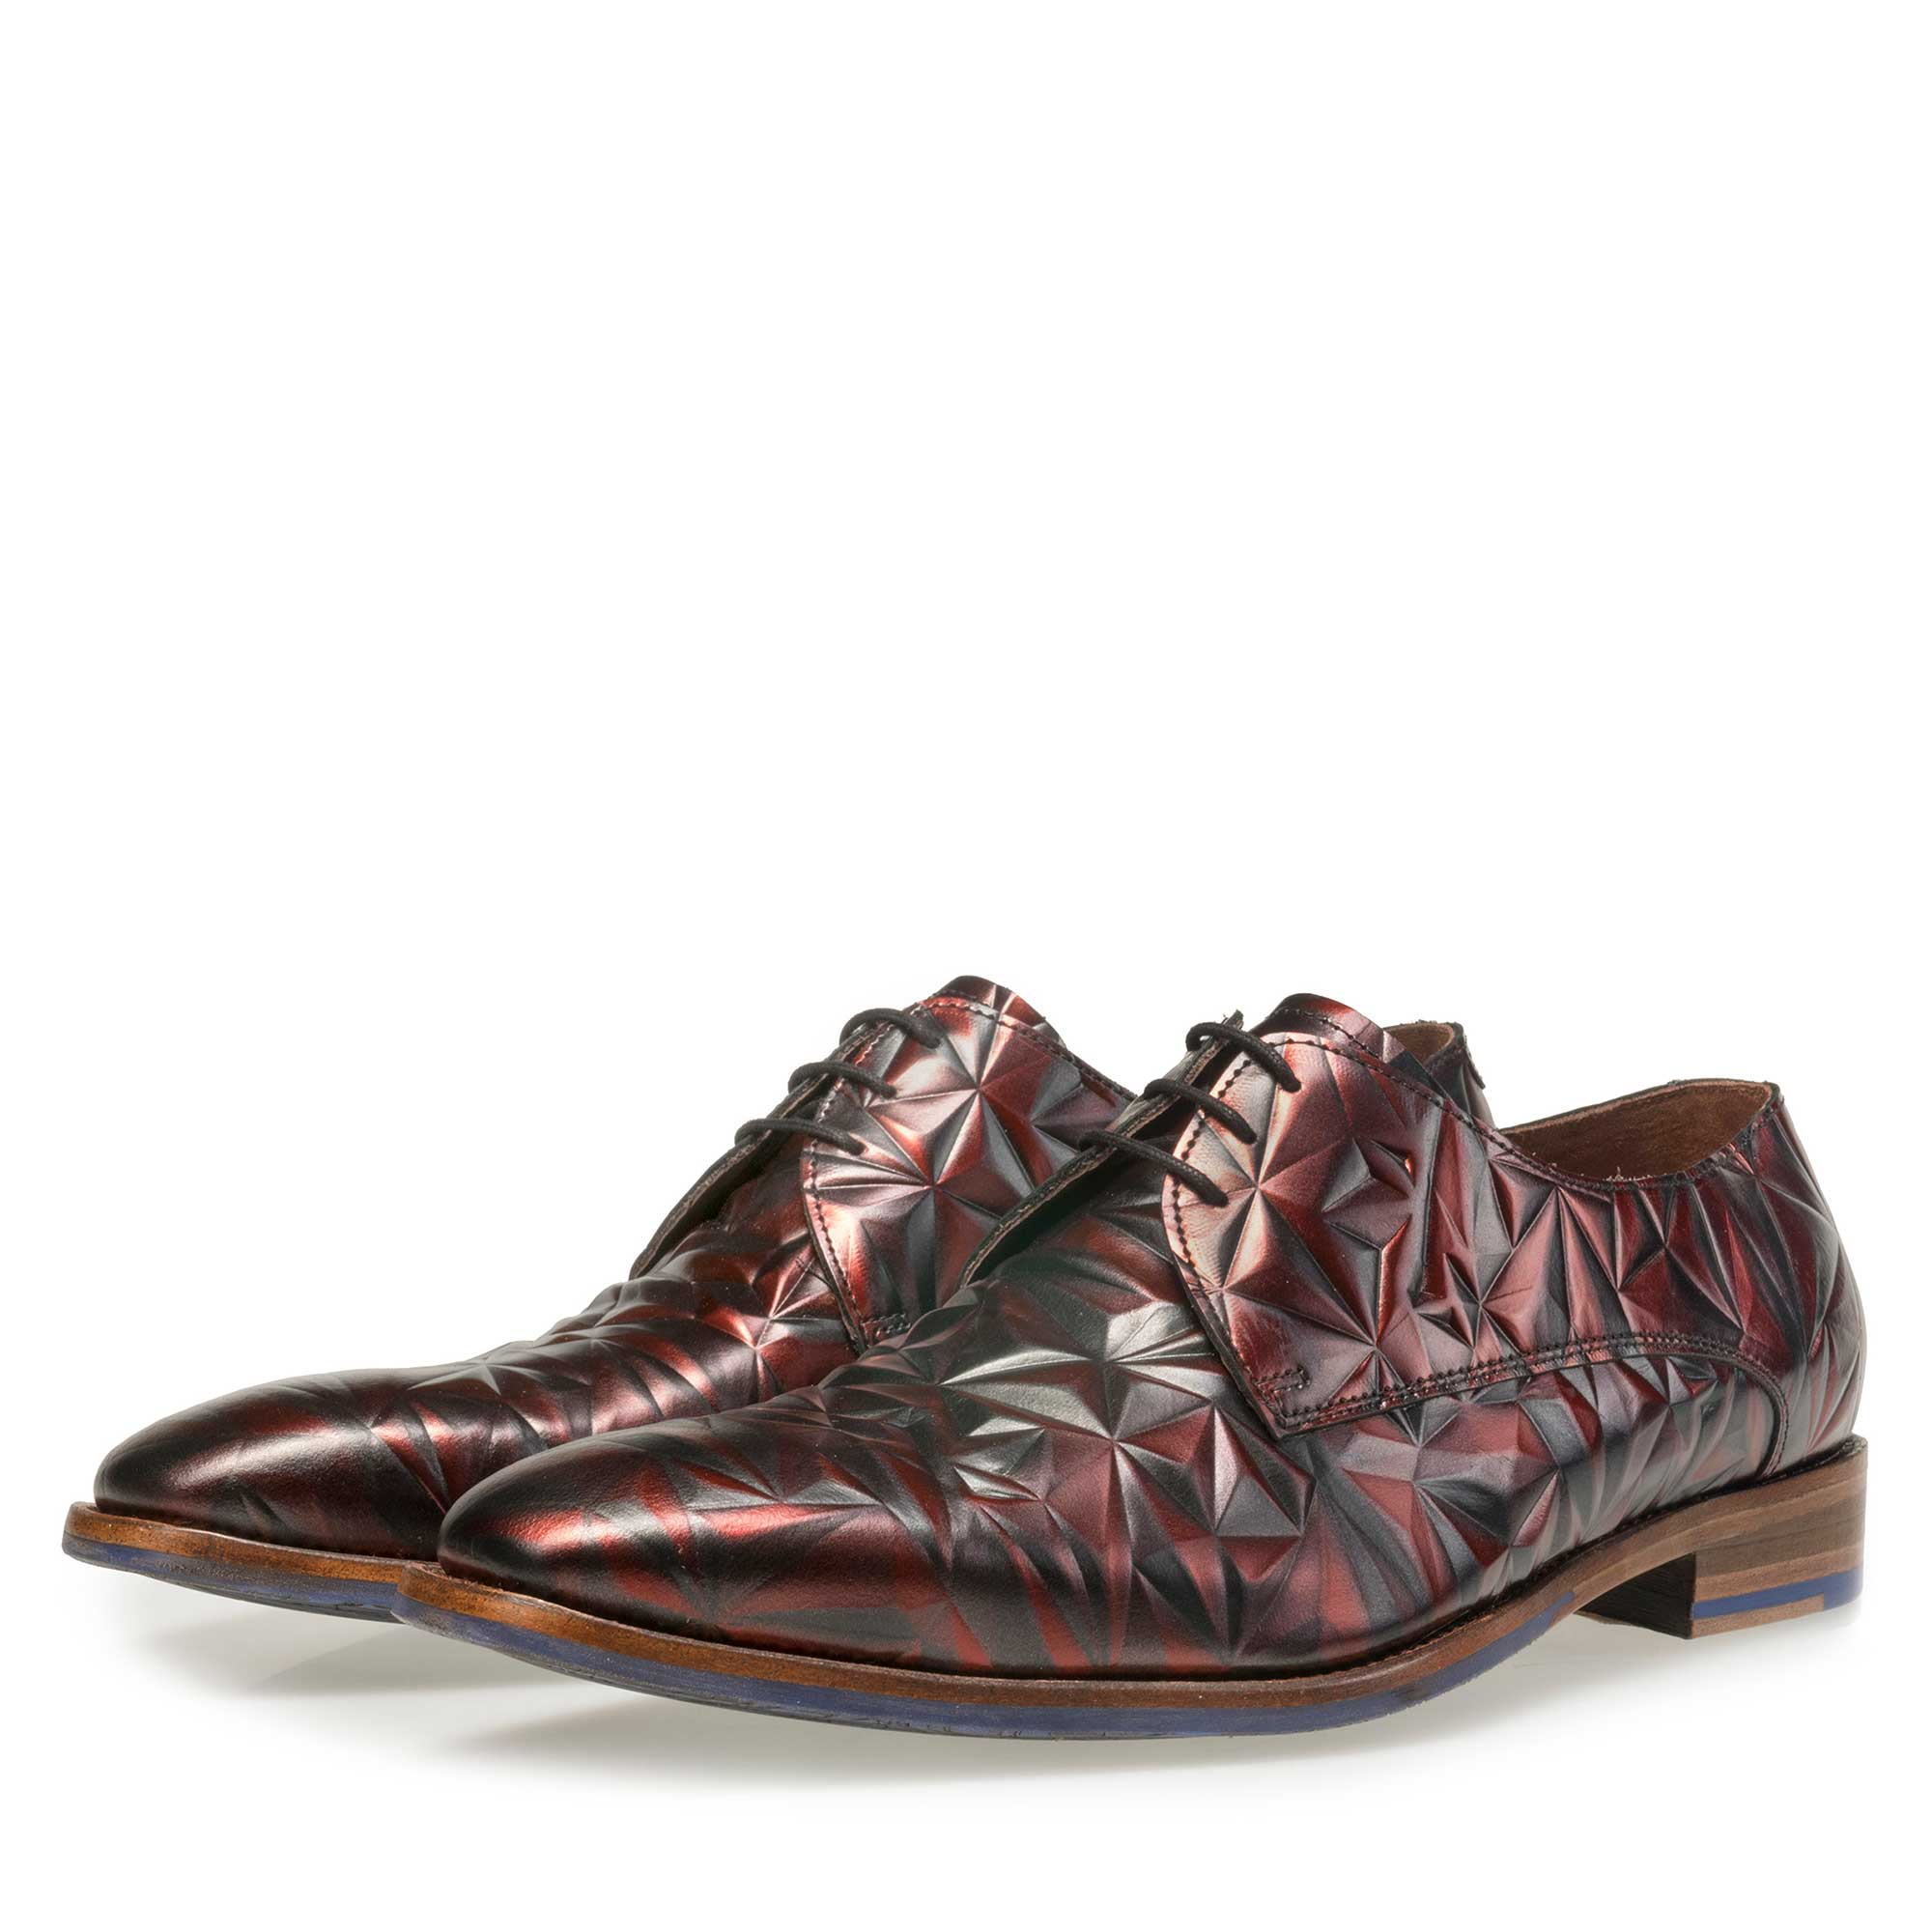 14237/01 - Floris van Bommel men's claret leather lace shoe finished with a black mother-of-pearl effect